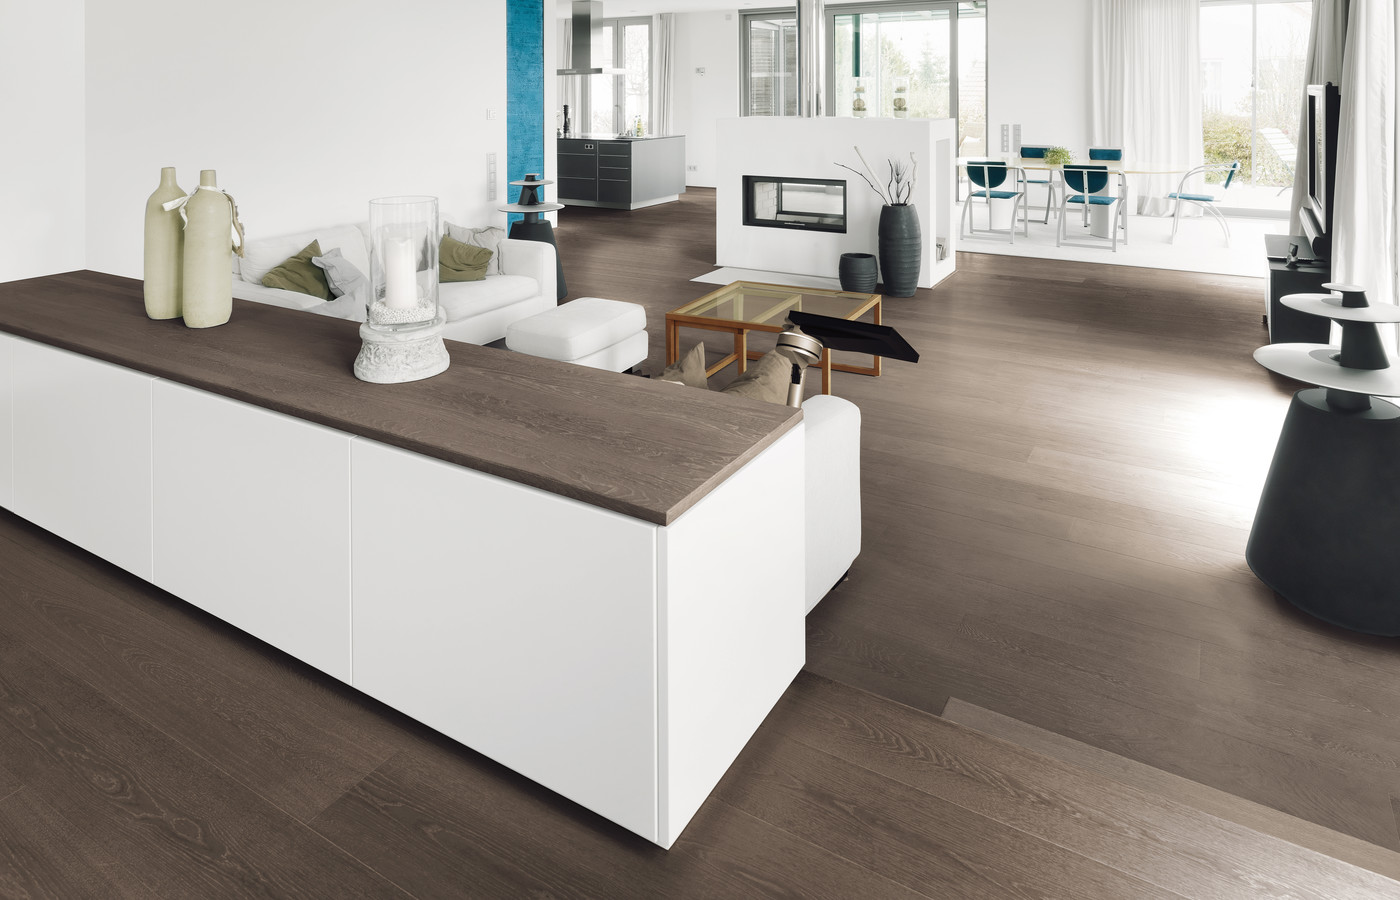 Parquet salon carrelage cuisine for Forgiarini carrelage